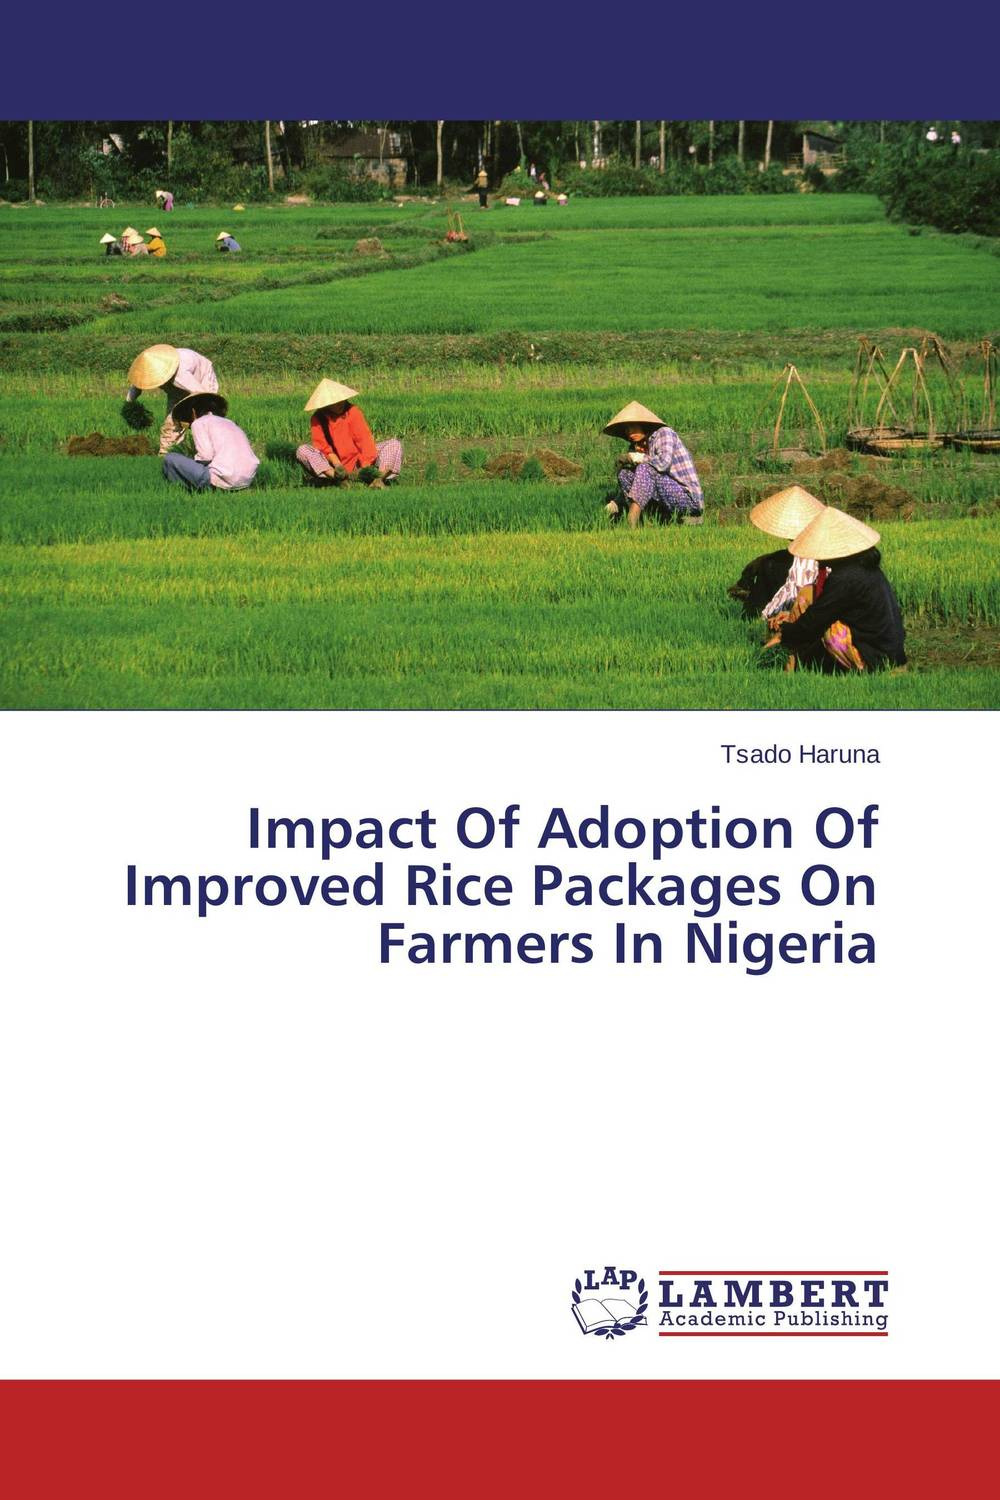 Impact Of Adoption Of Improved Rice Packages On Farmers In Nigeria rajsinh mohite impact of national leprosy eradication programme